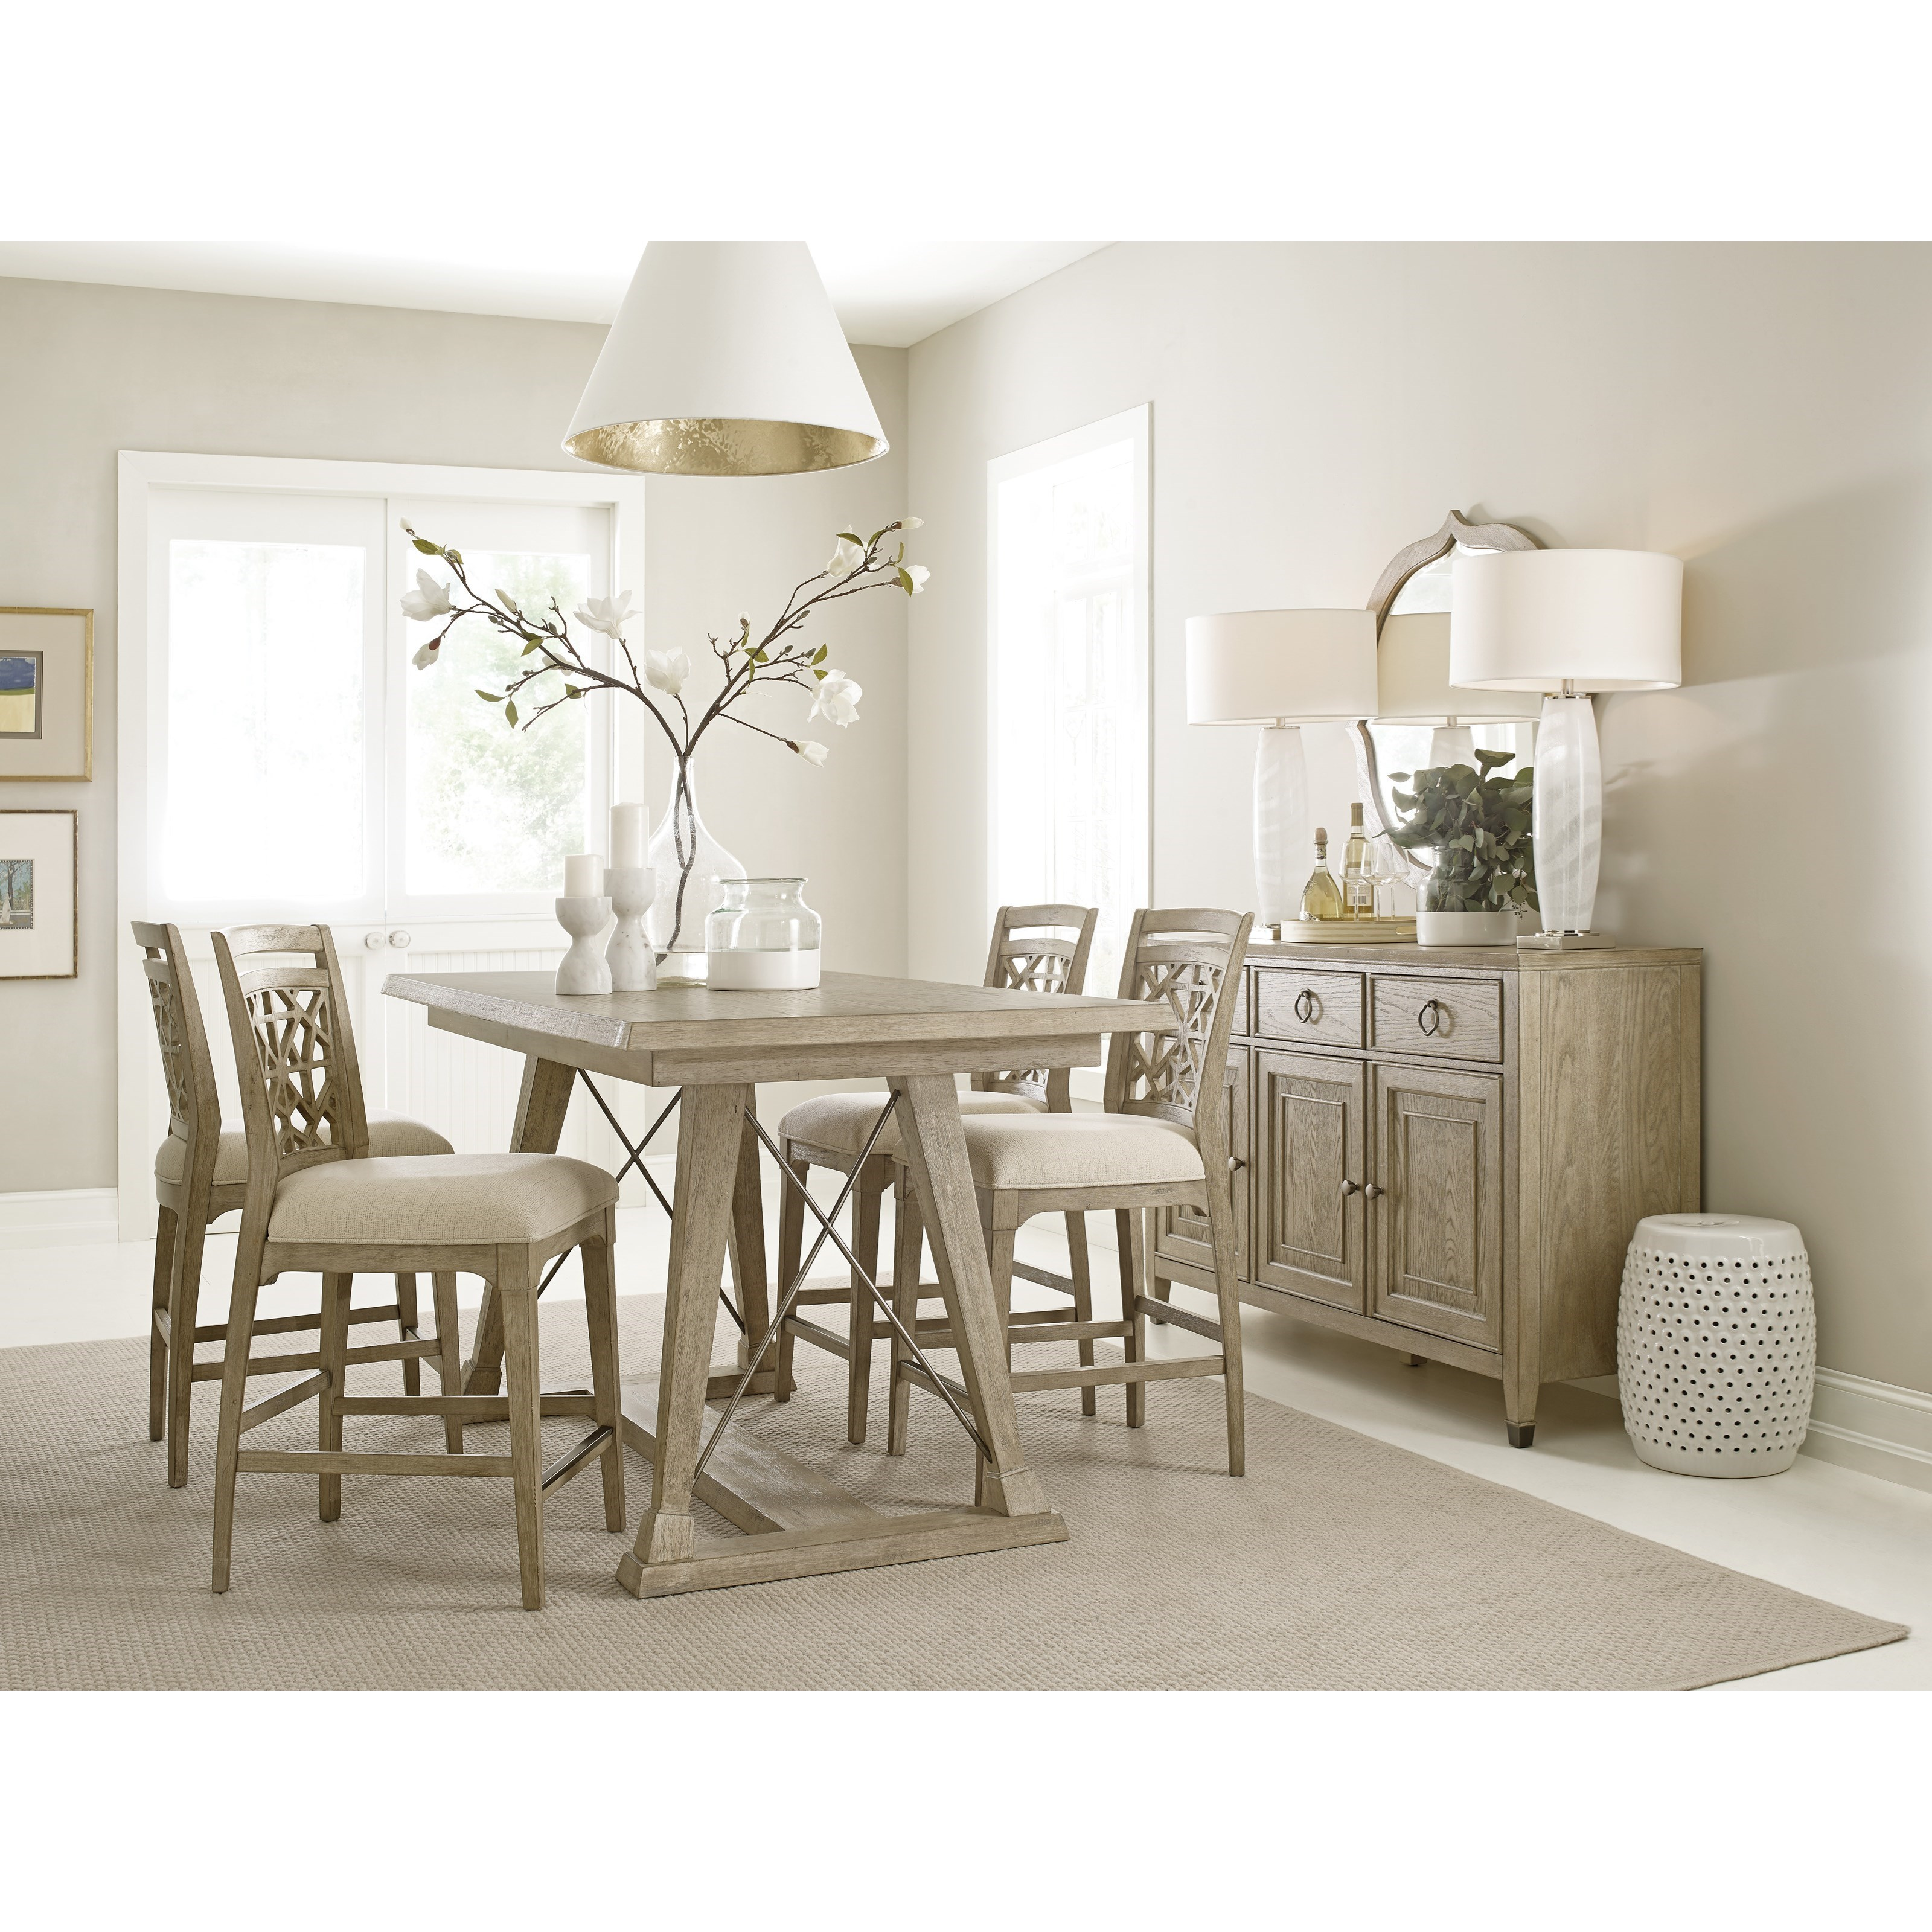 Casual Dining Room Furniture: American Drew Vista Casual Dining Room Group